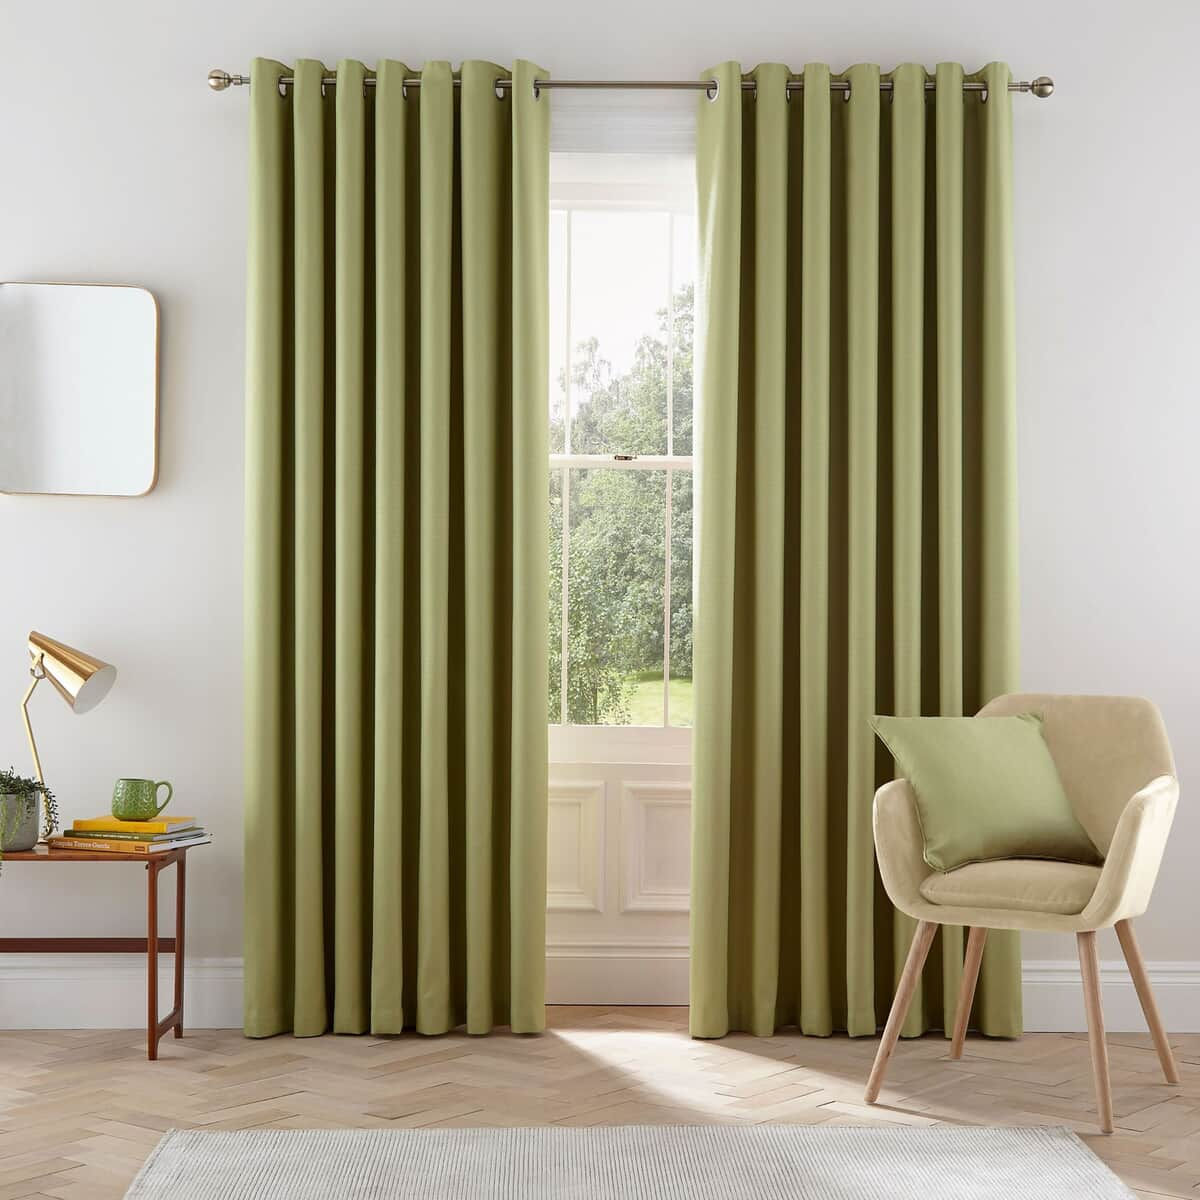 Helena Springfield Eden Willow Curtains large